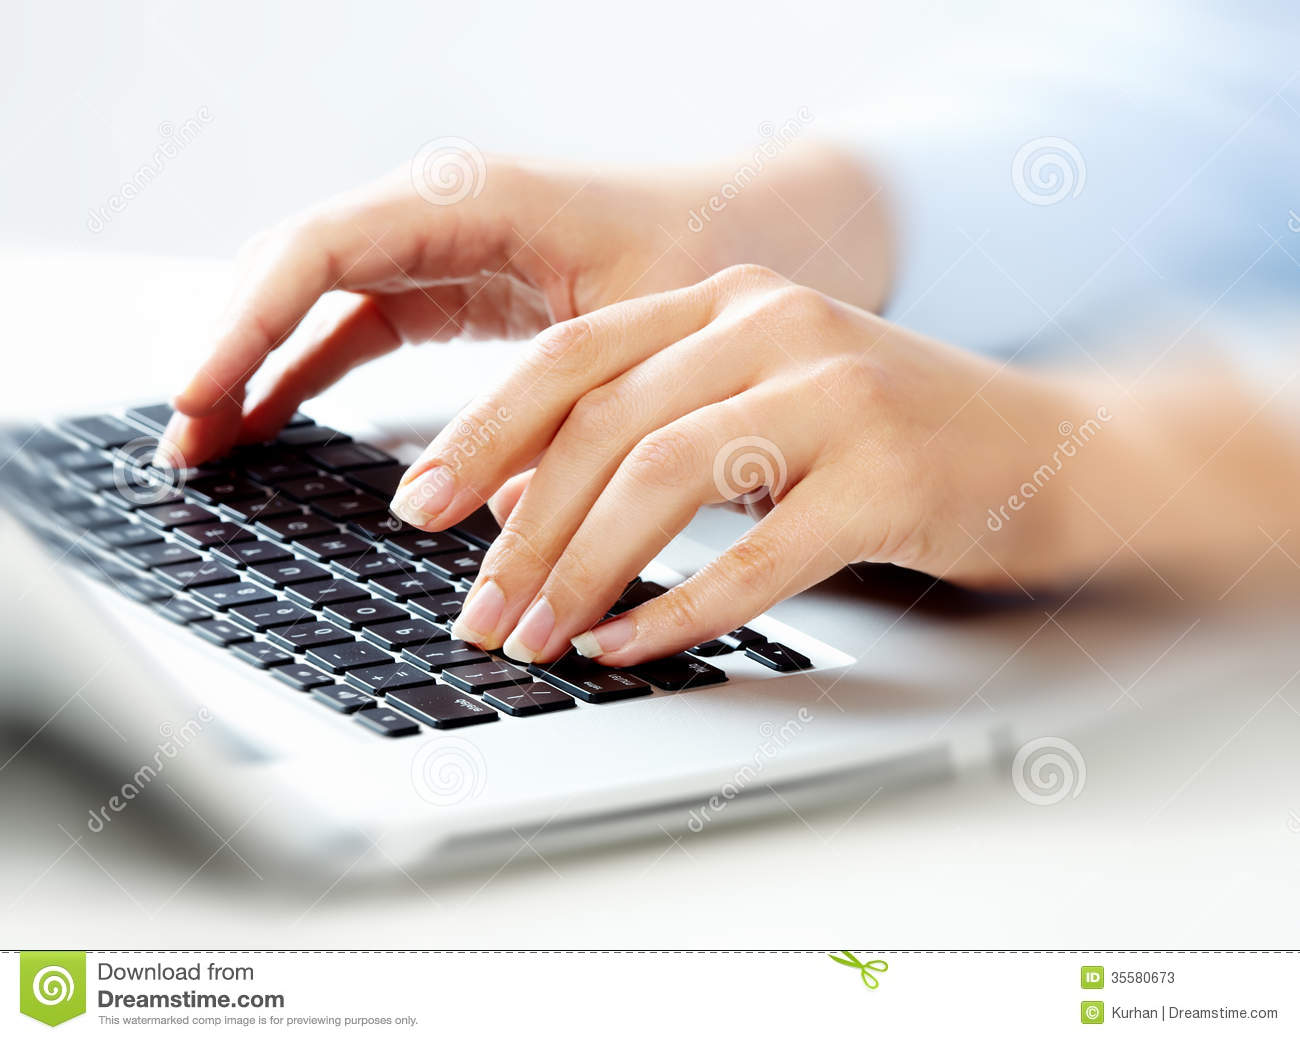 hands-laptop-computer-keyboard-business-woman-35580673.jpg